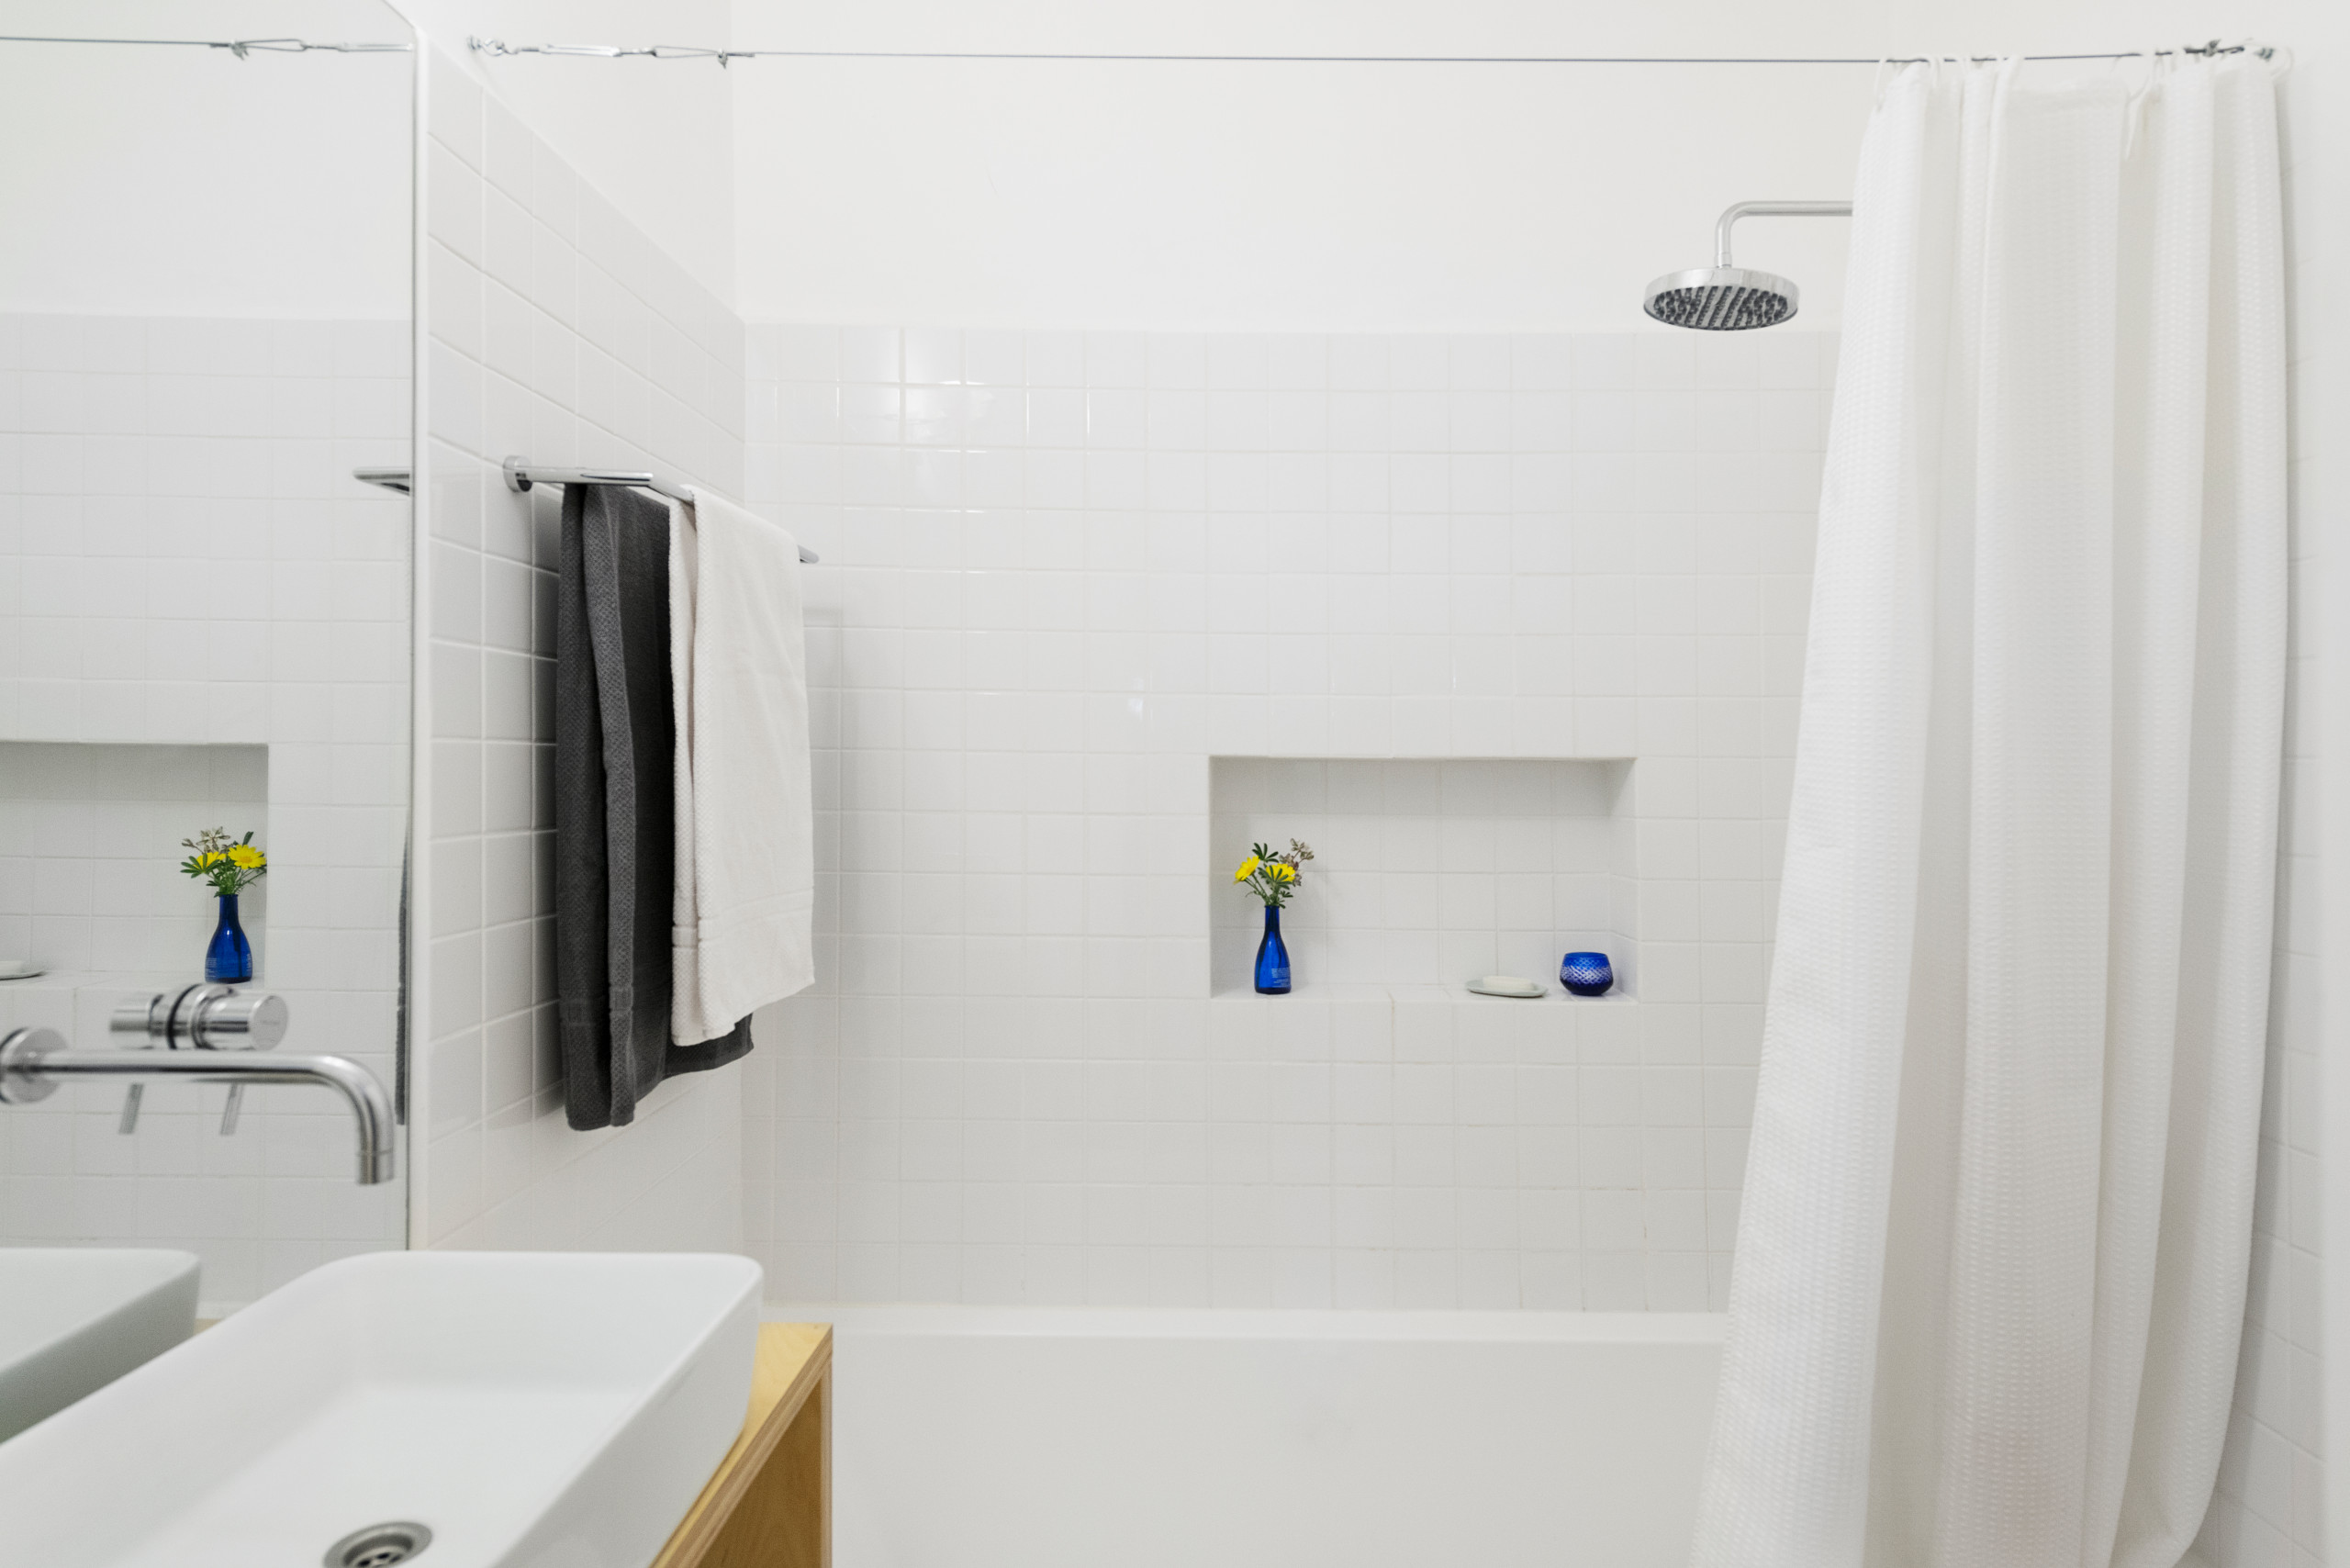 75 Beautiful Concrete Floor Bathroom With A Hot Tub Pictures Ideas December 2020 Houzz